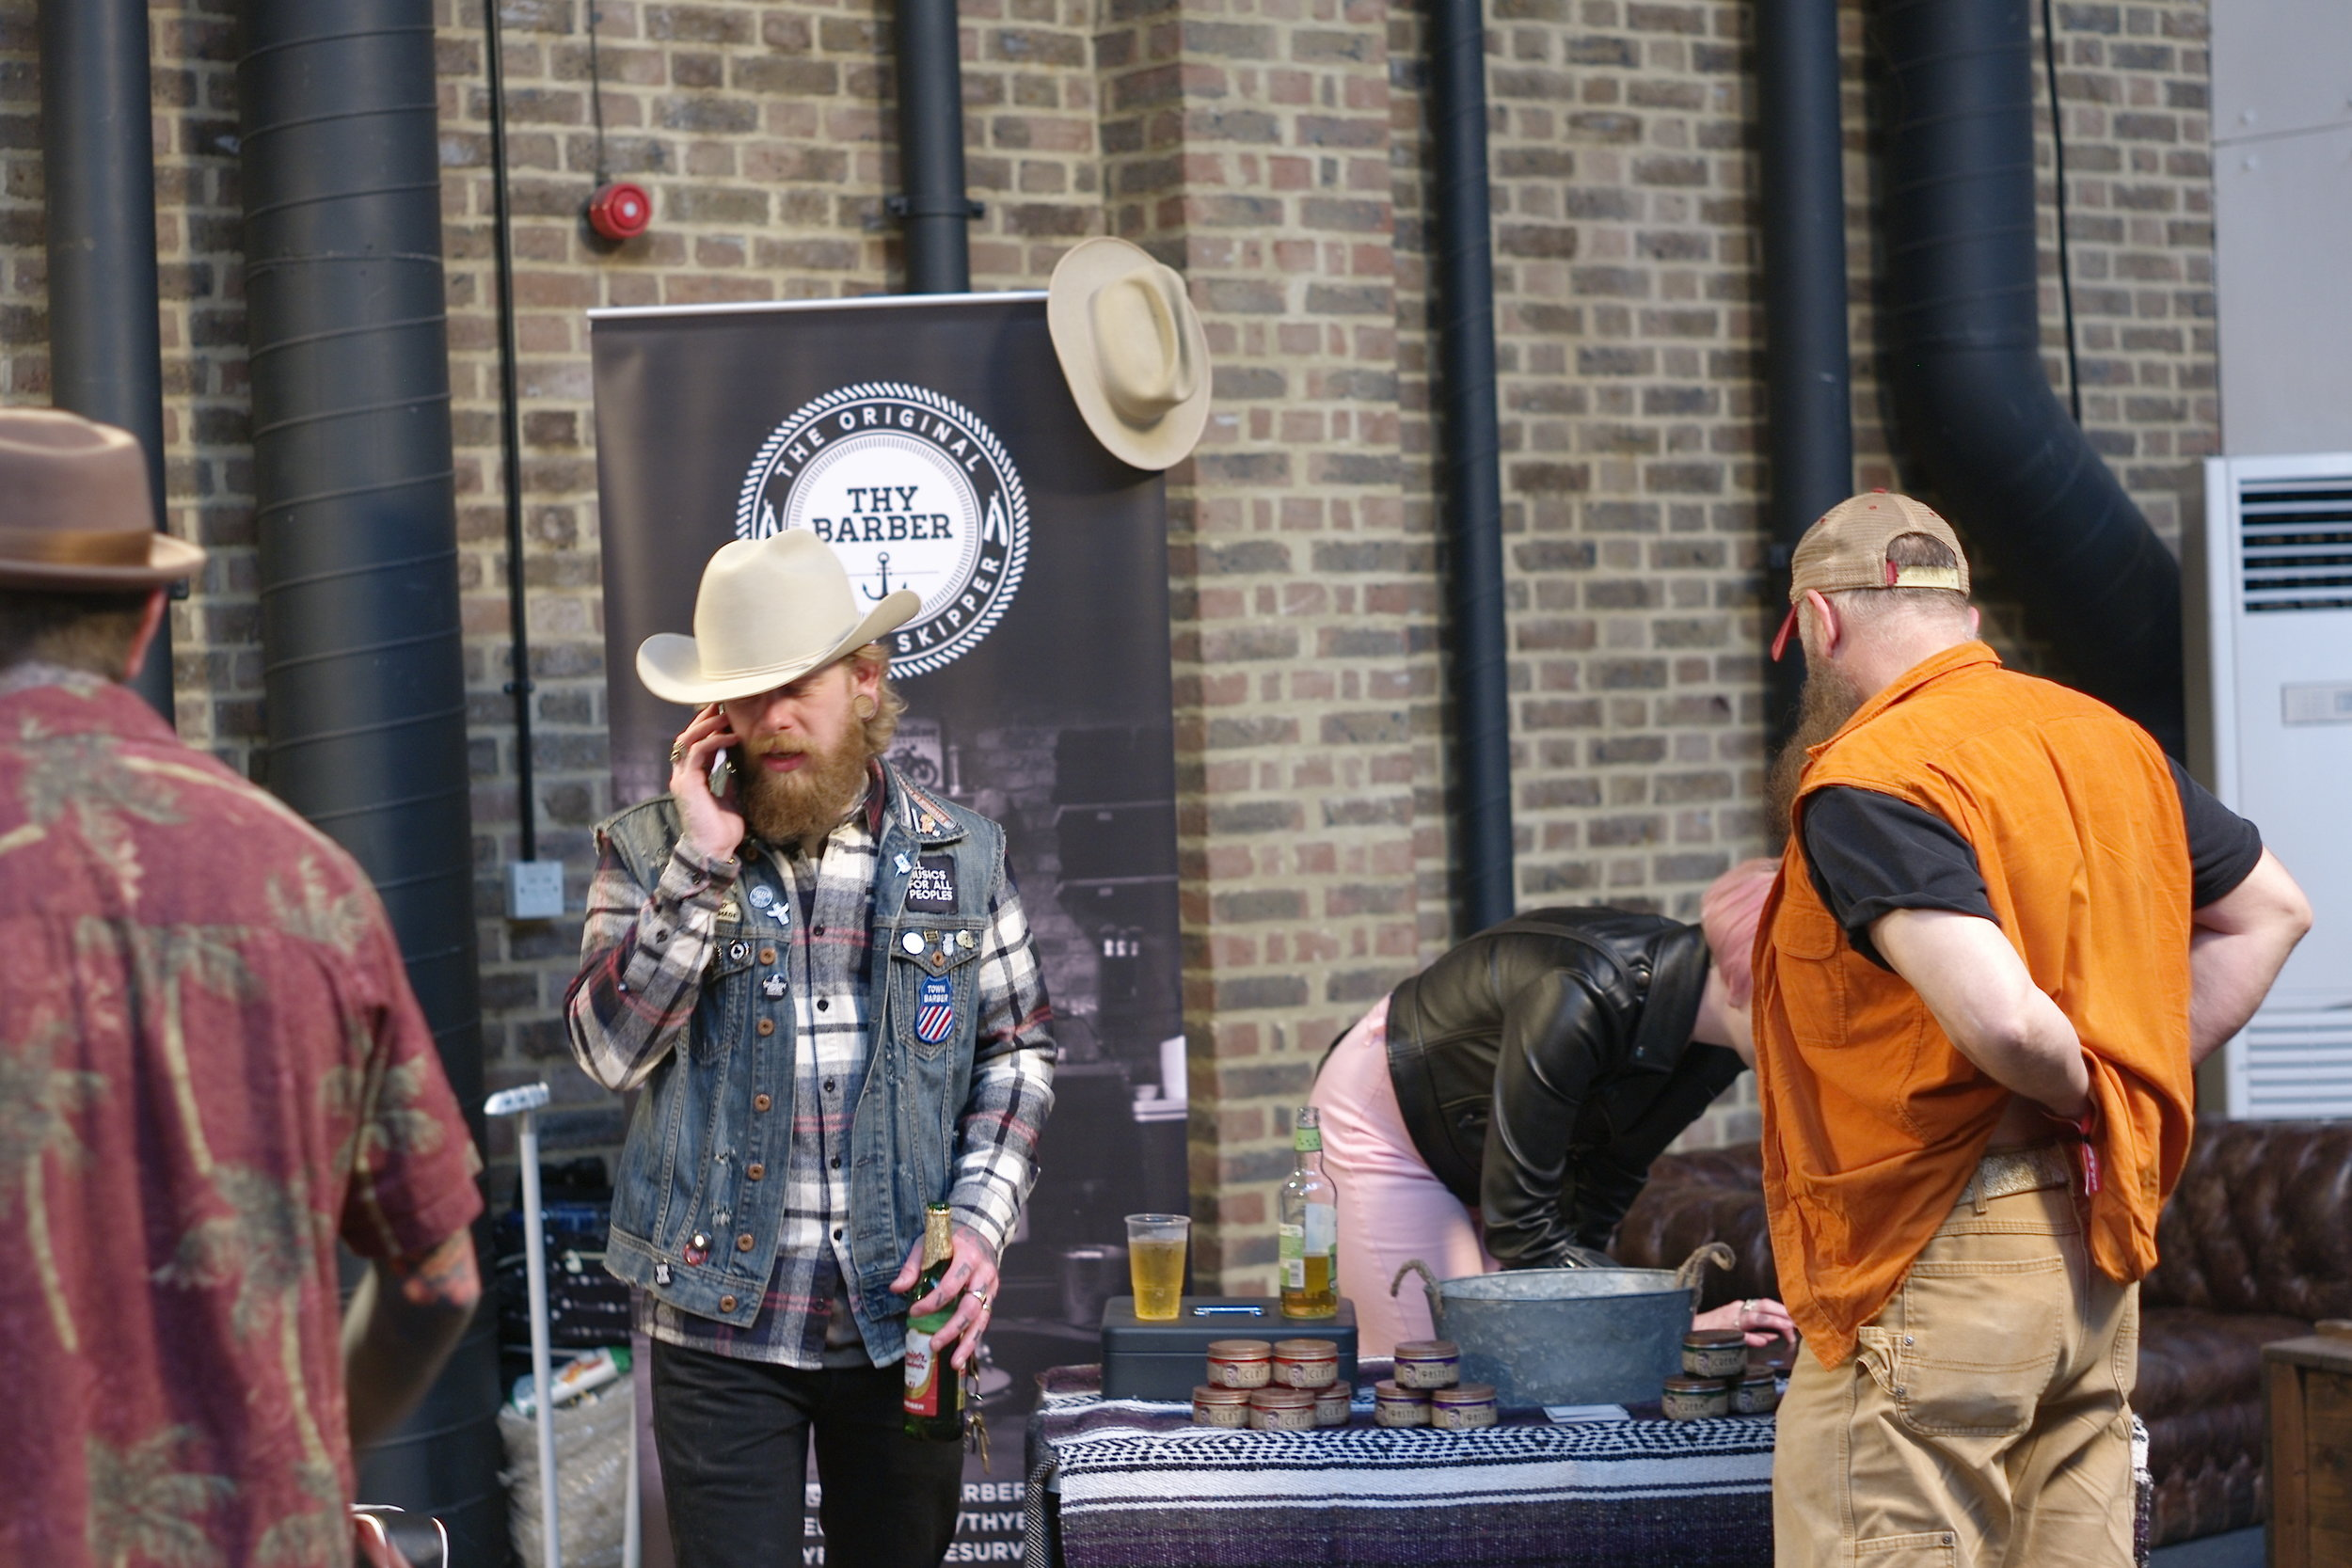 Casual snob - Bikeshed London 2018 Thy Barber.JPG